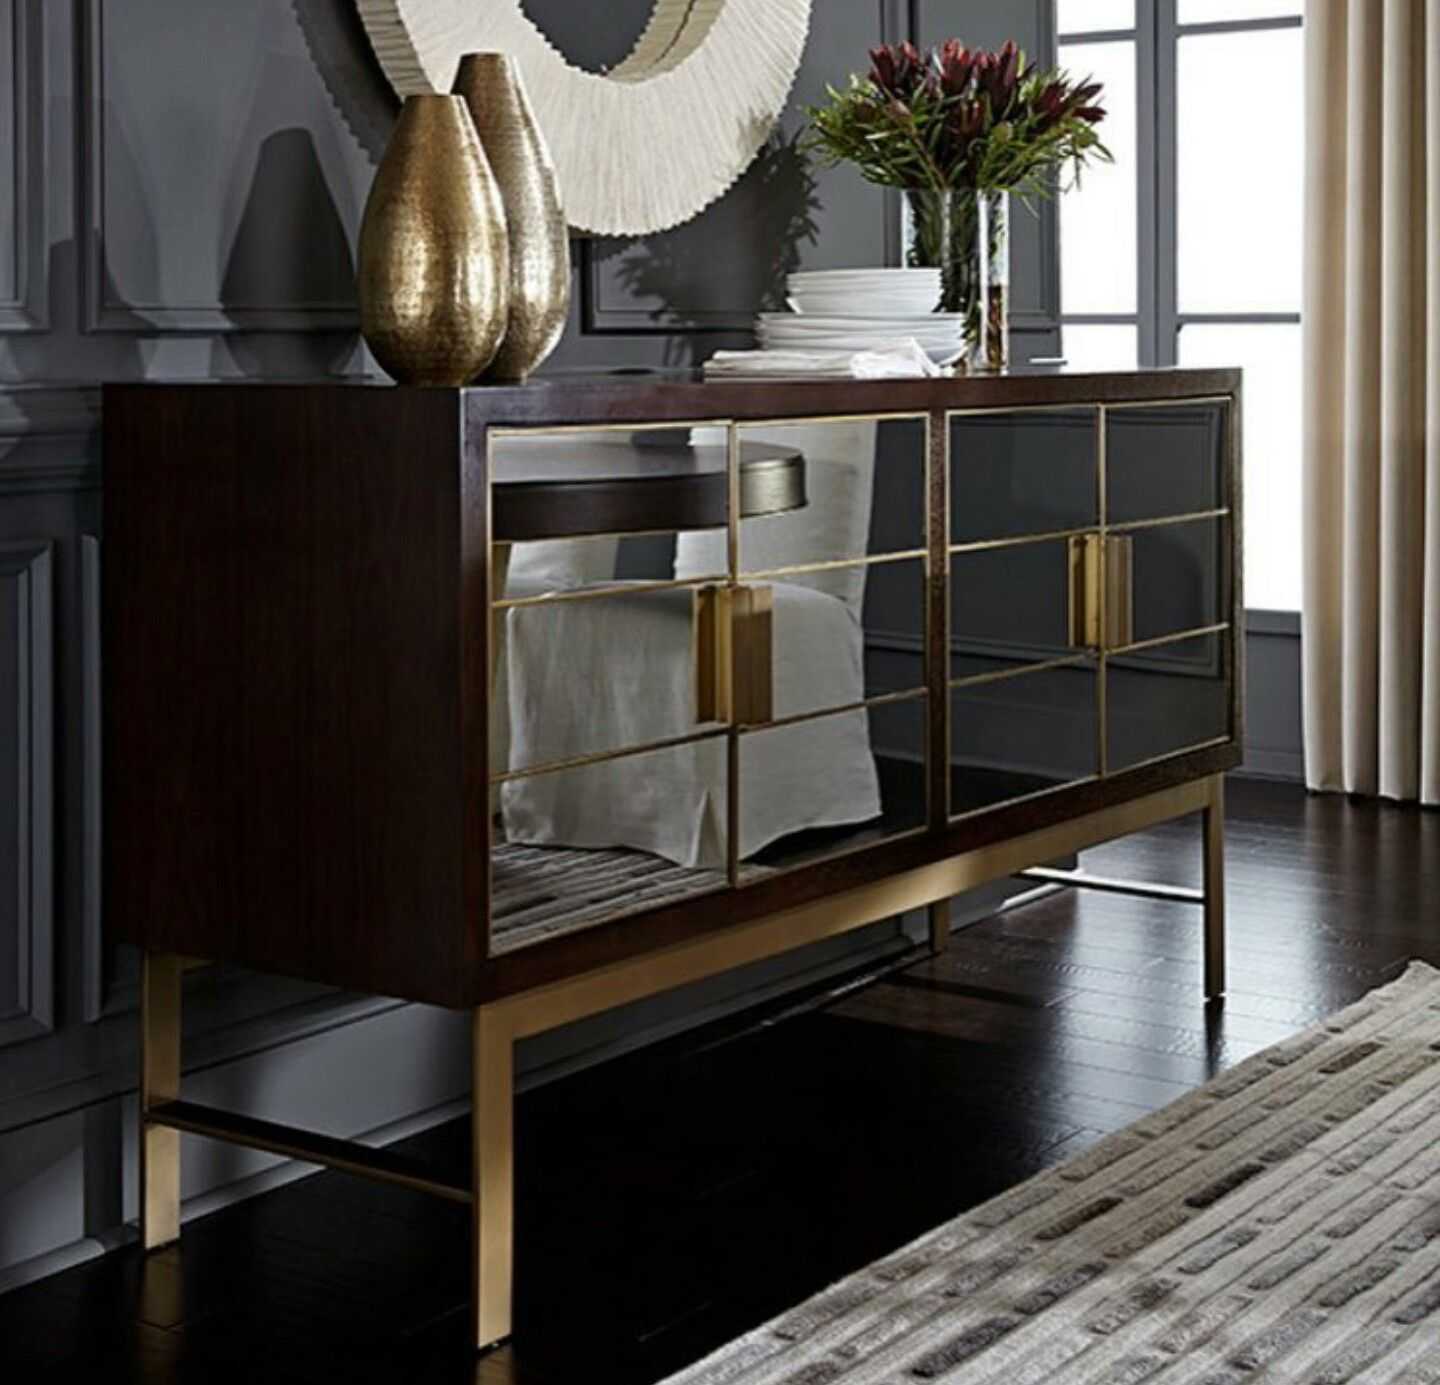 Pin by Elizabeth cook on All things .home. decor